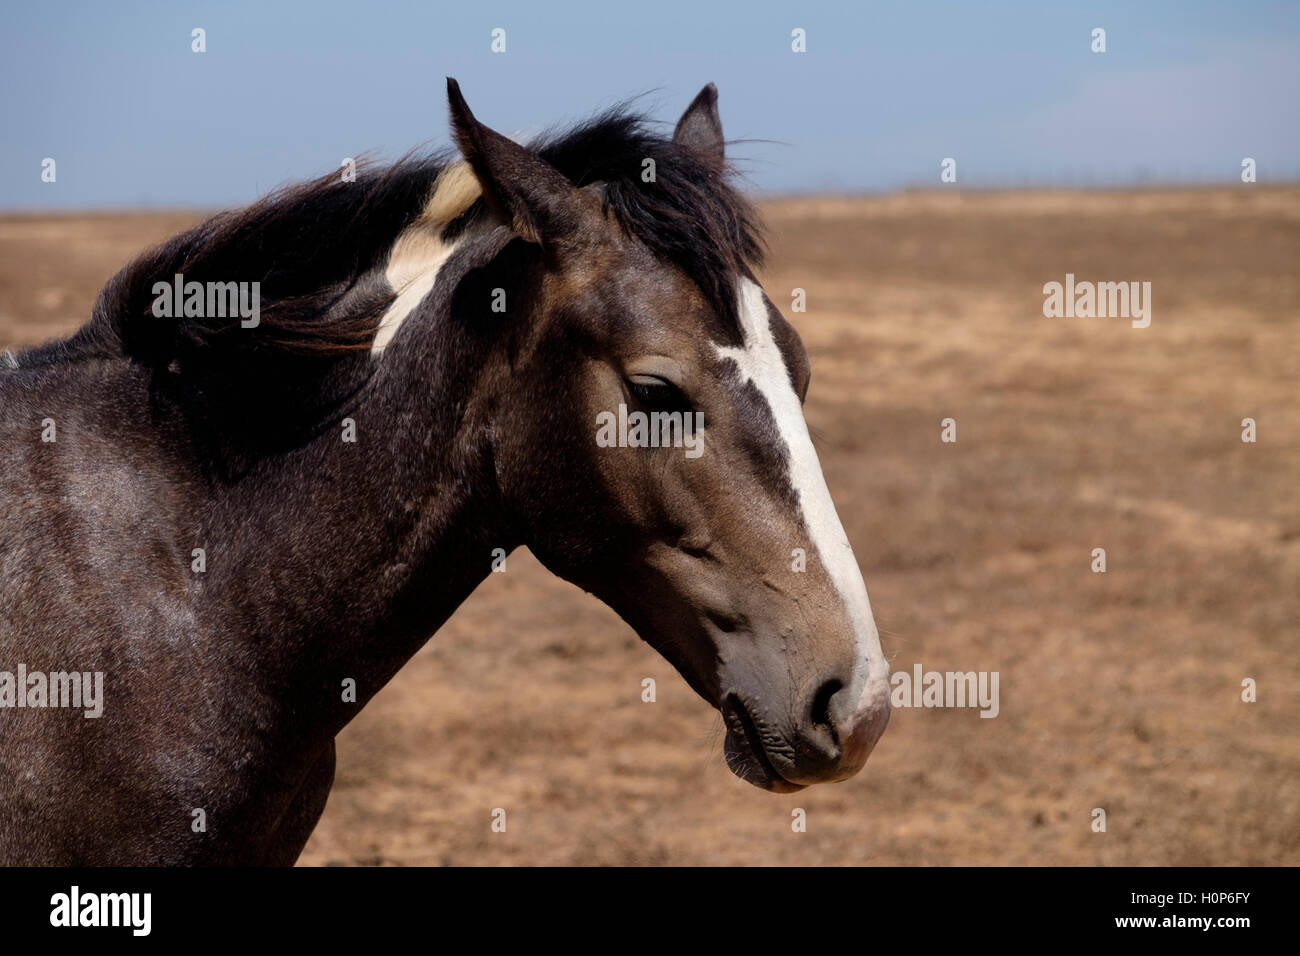 Brown horse on a field - Stock Image